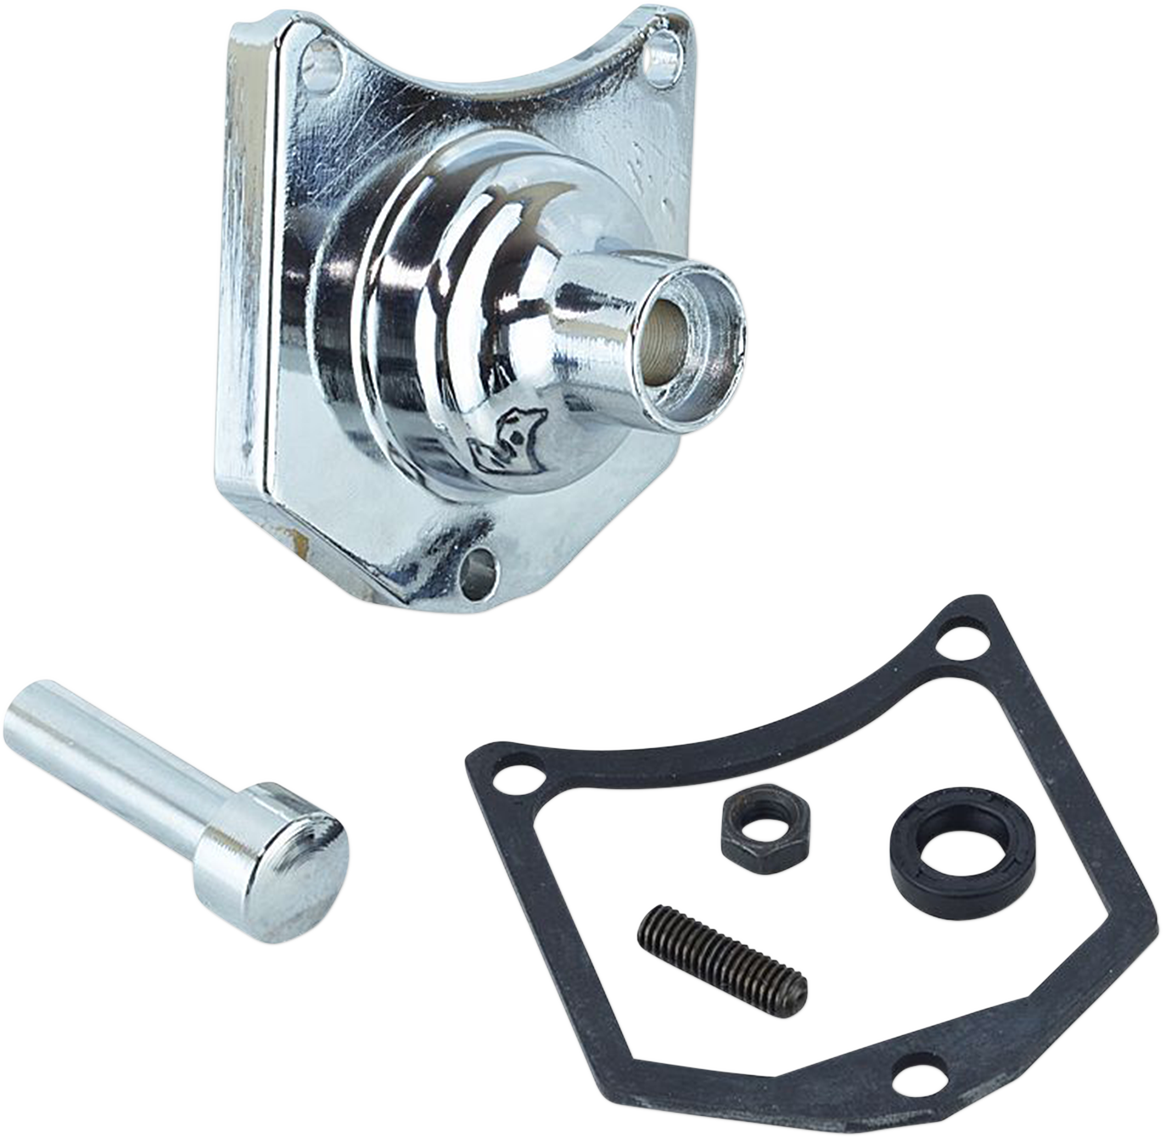 Drag Specialties Chrome Solenoid End Cover Starter Button for Harley Davidson